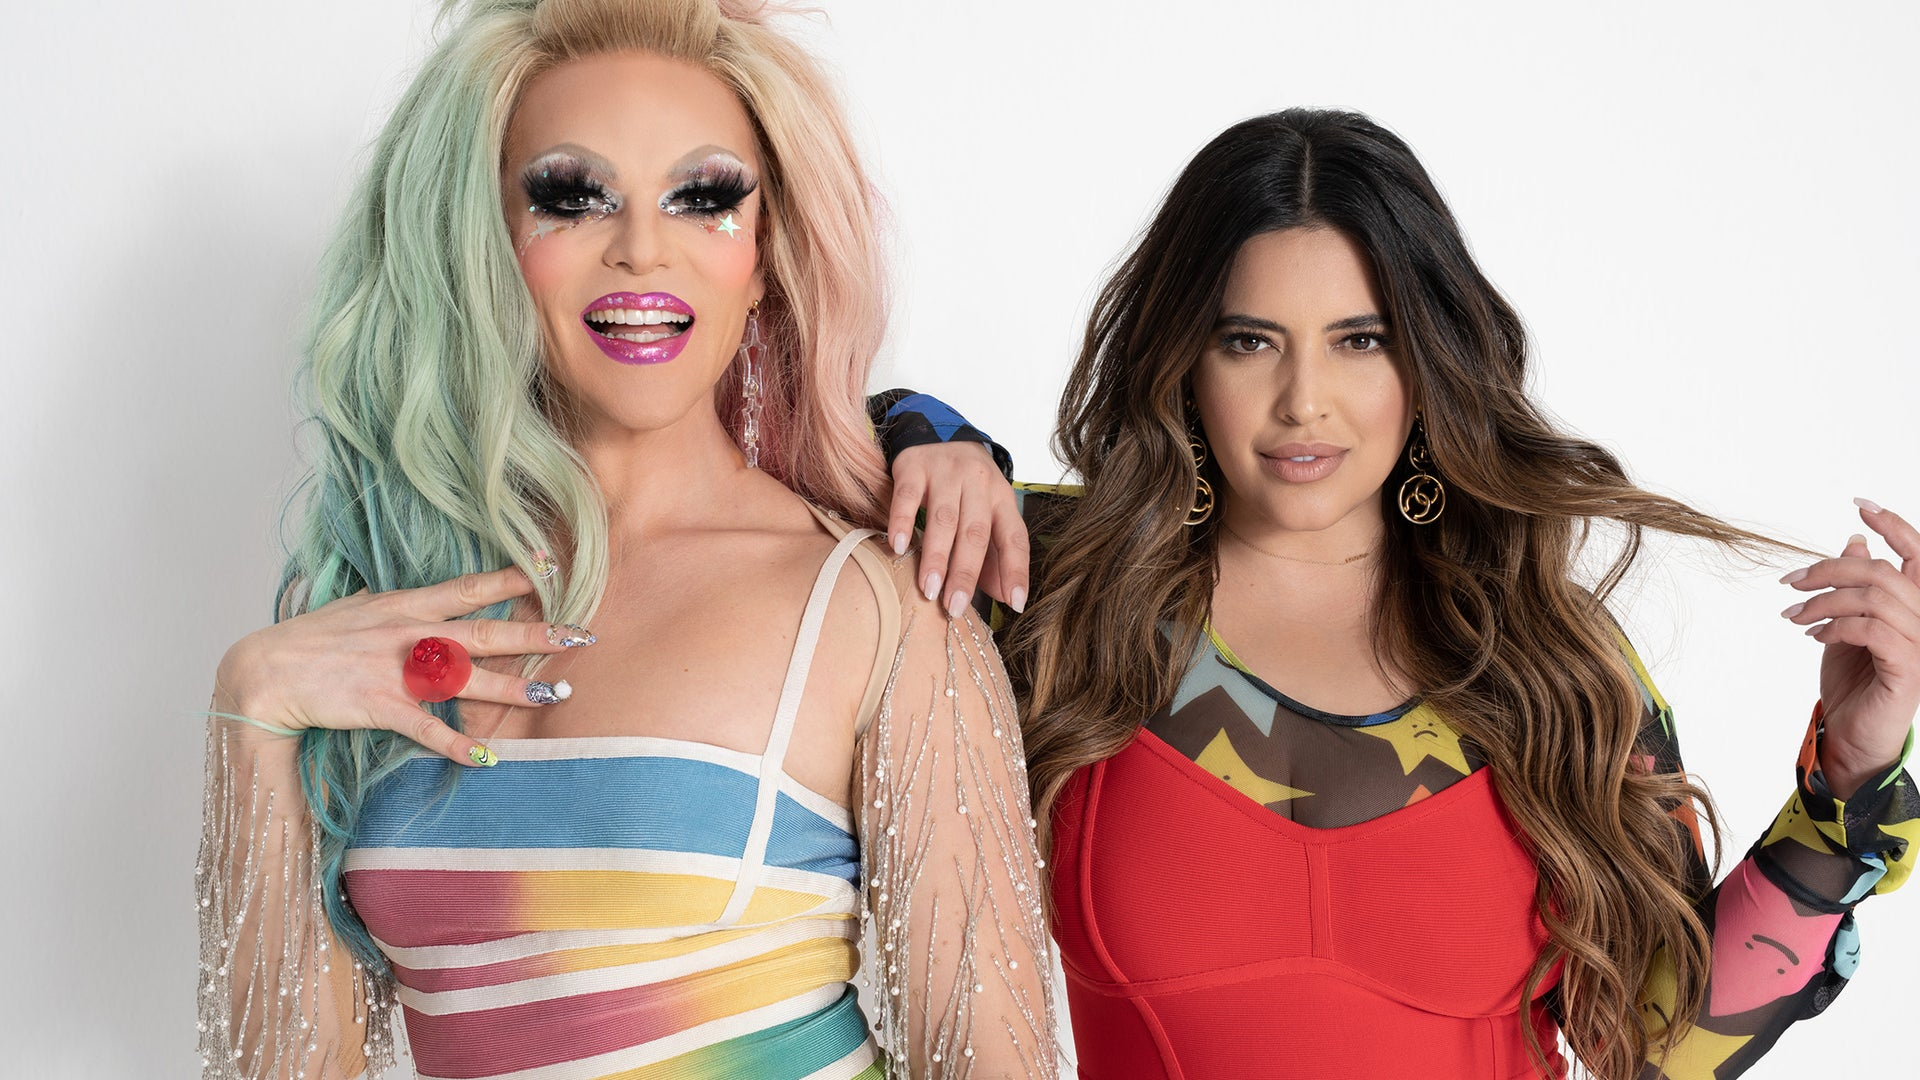 Fashion's A Drag Model/actress Willam Belli joined by supermodel Denise Bidot kick back with their closest drag queen friends to break down what the hottest celebs are wearing and all that's happening in the world of fashion.